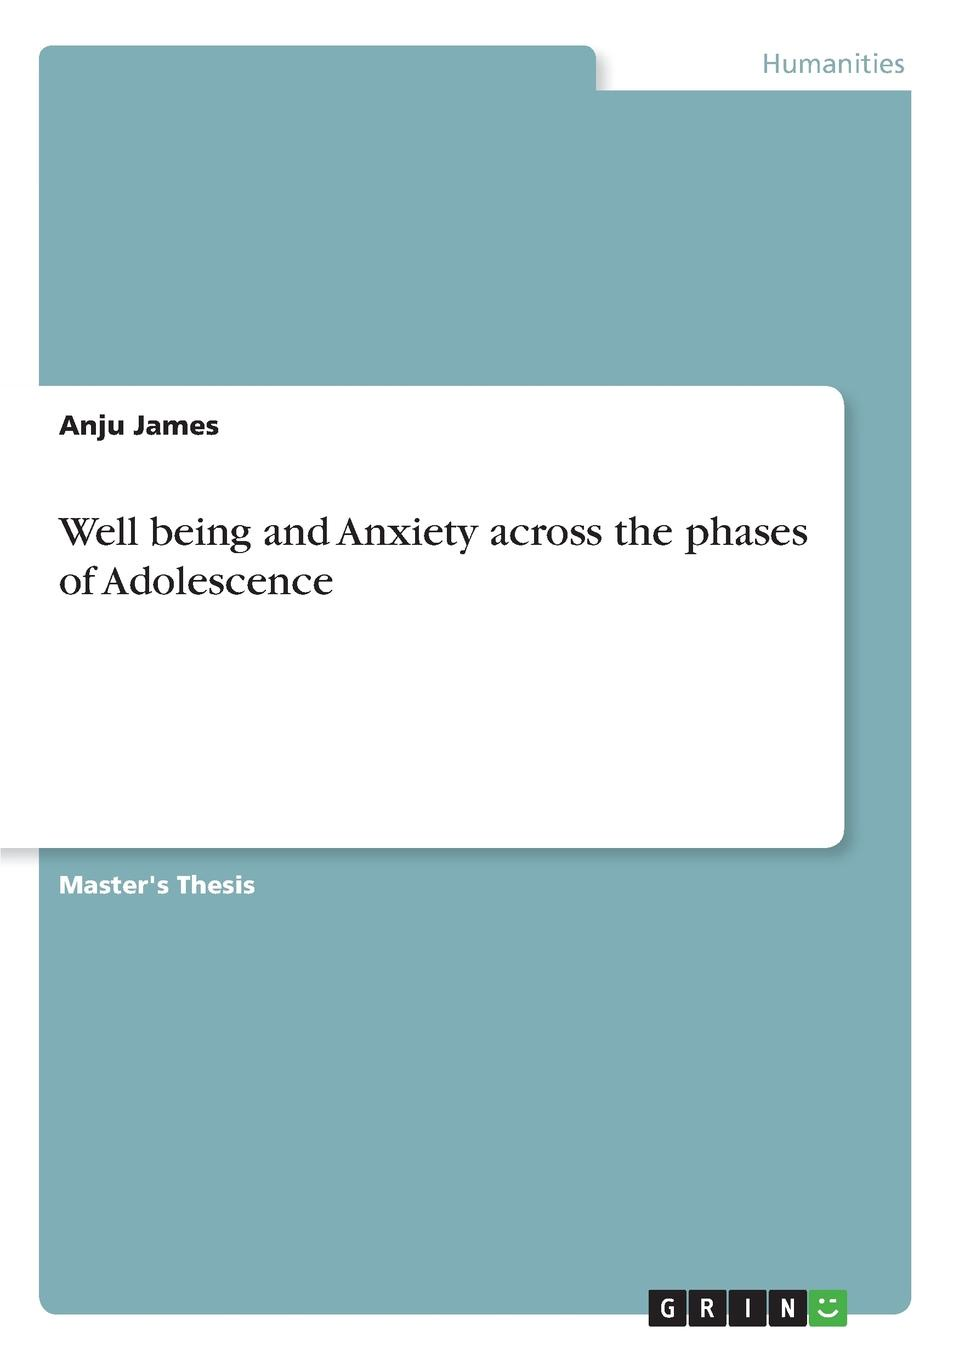 Anju James Well being and Anxiety across the phases of Adolescence kamila back jo chool gift set канцелярский набор цвет голубой 5 предметов 1096914